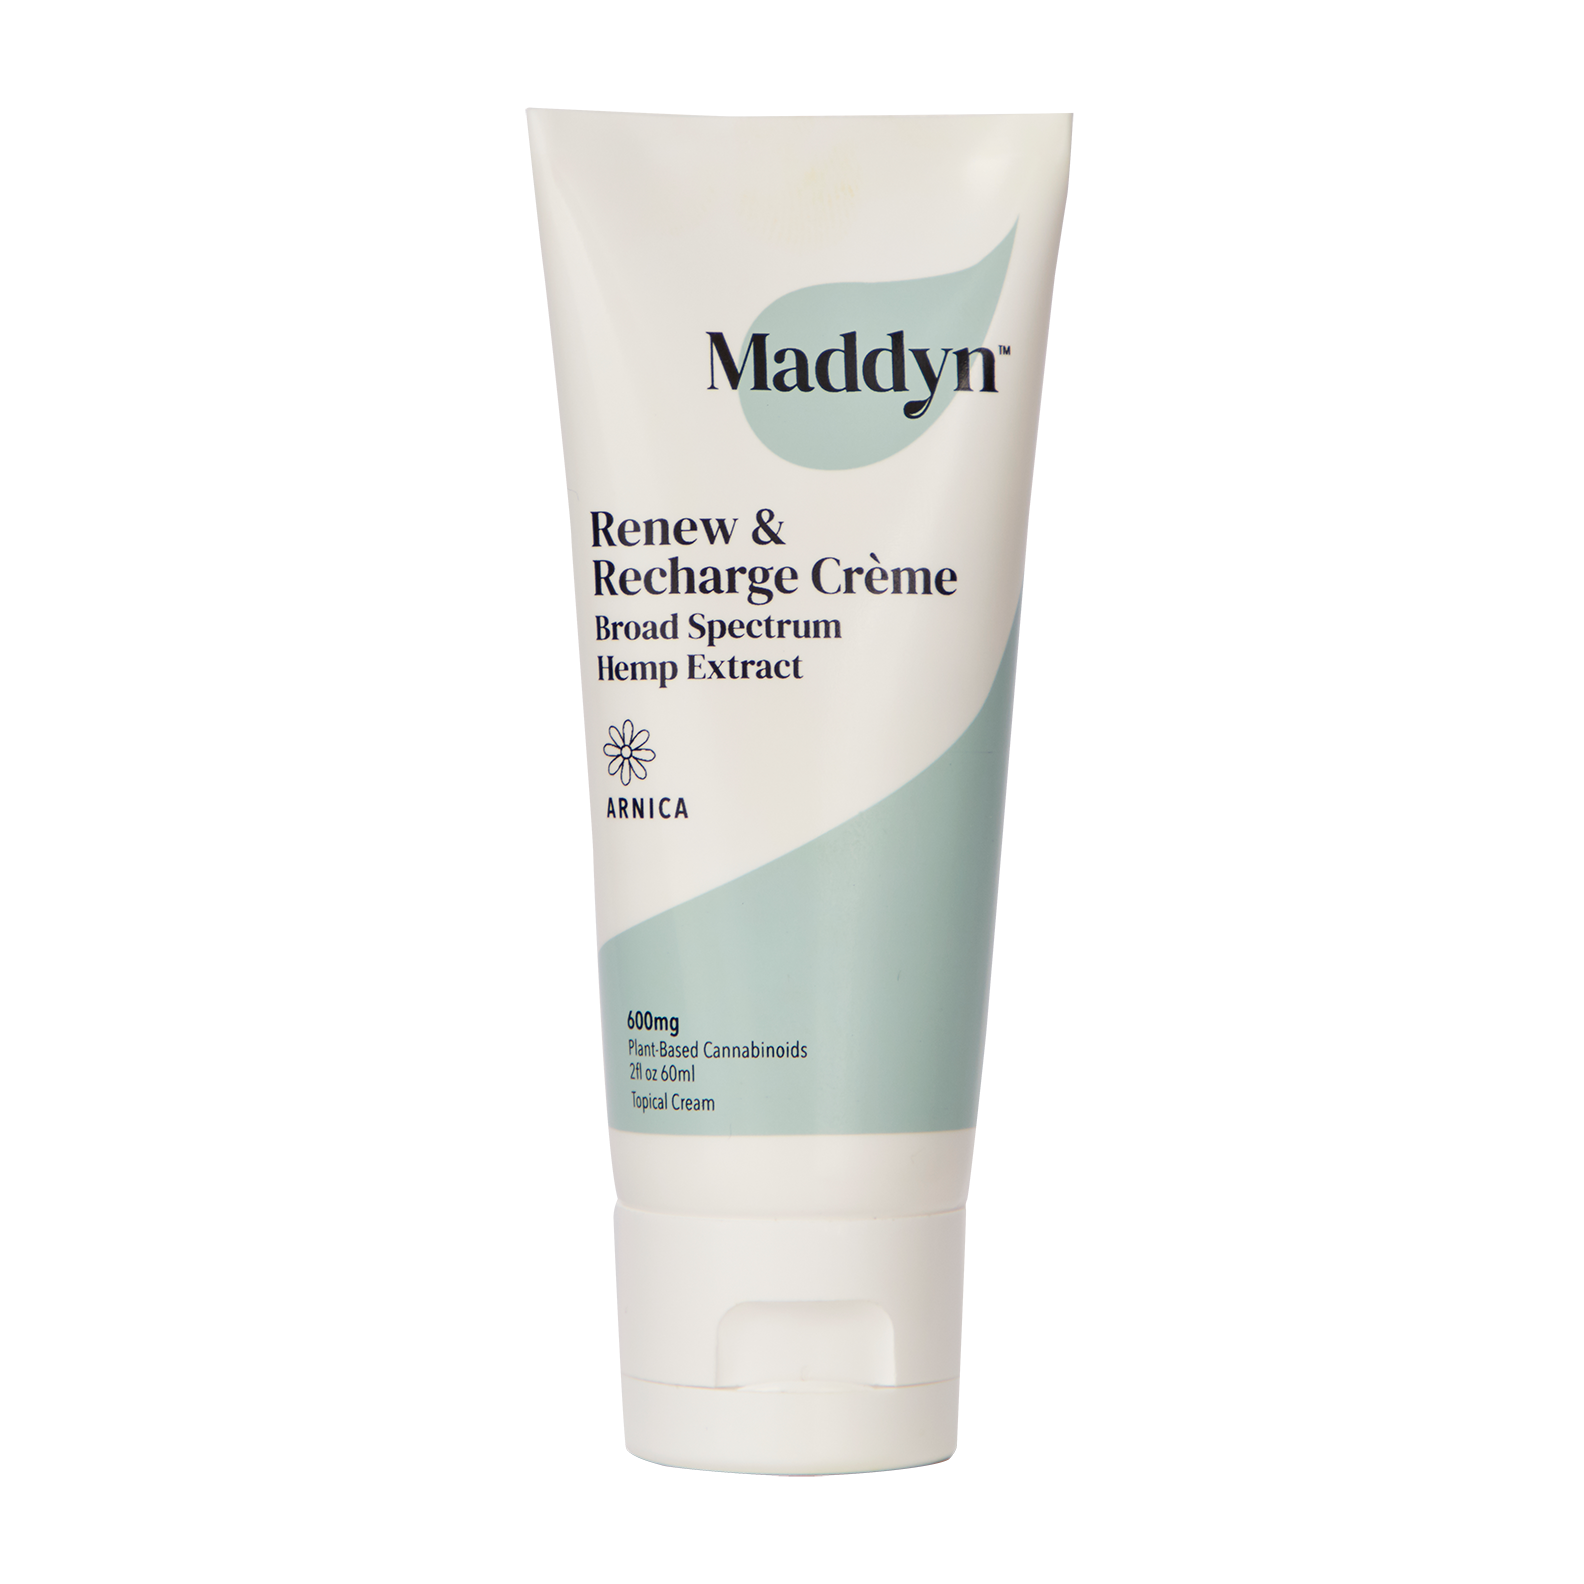 Maddyn Renew & Recharge broad spectrum  hemp extract topical cream